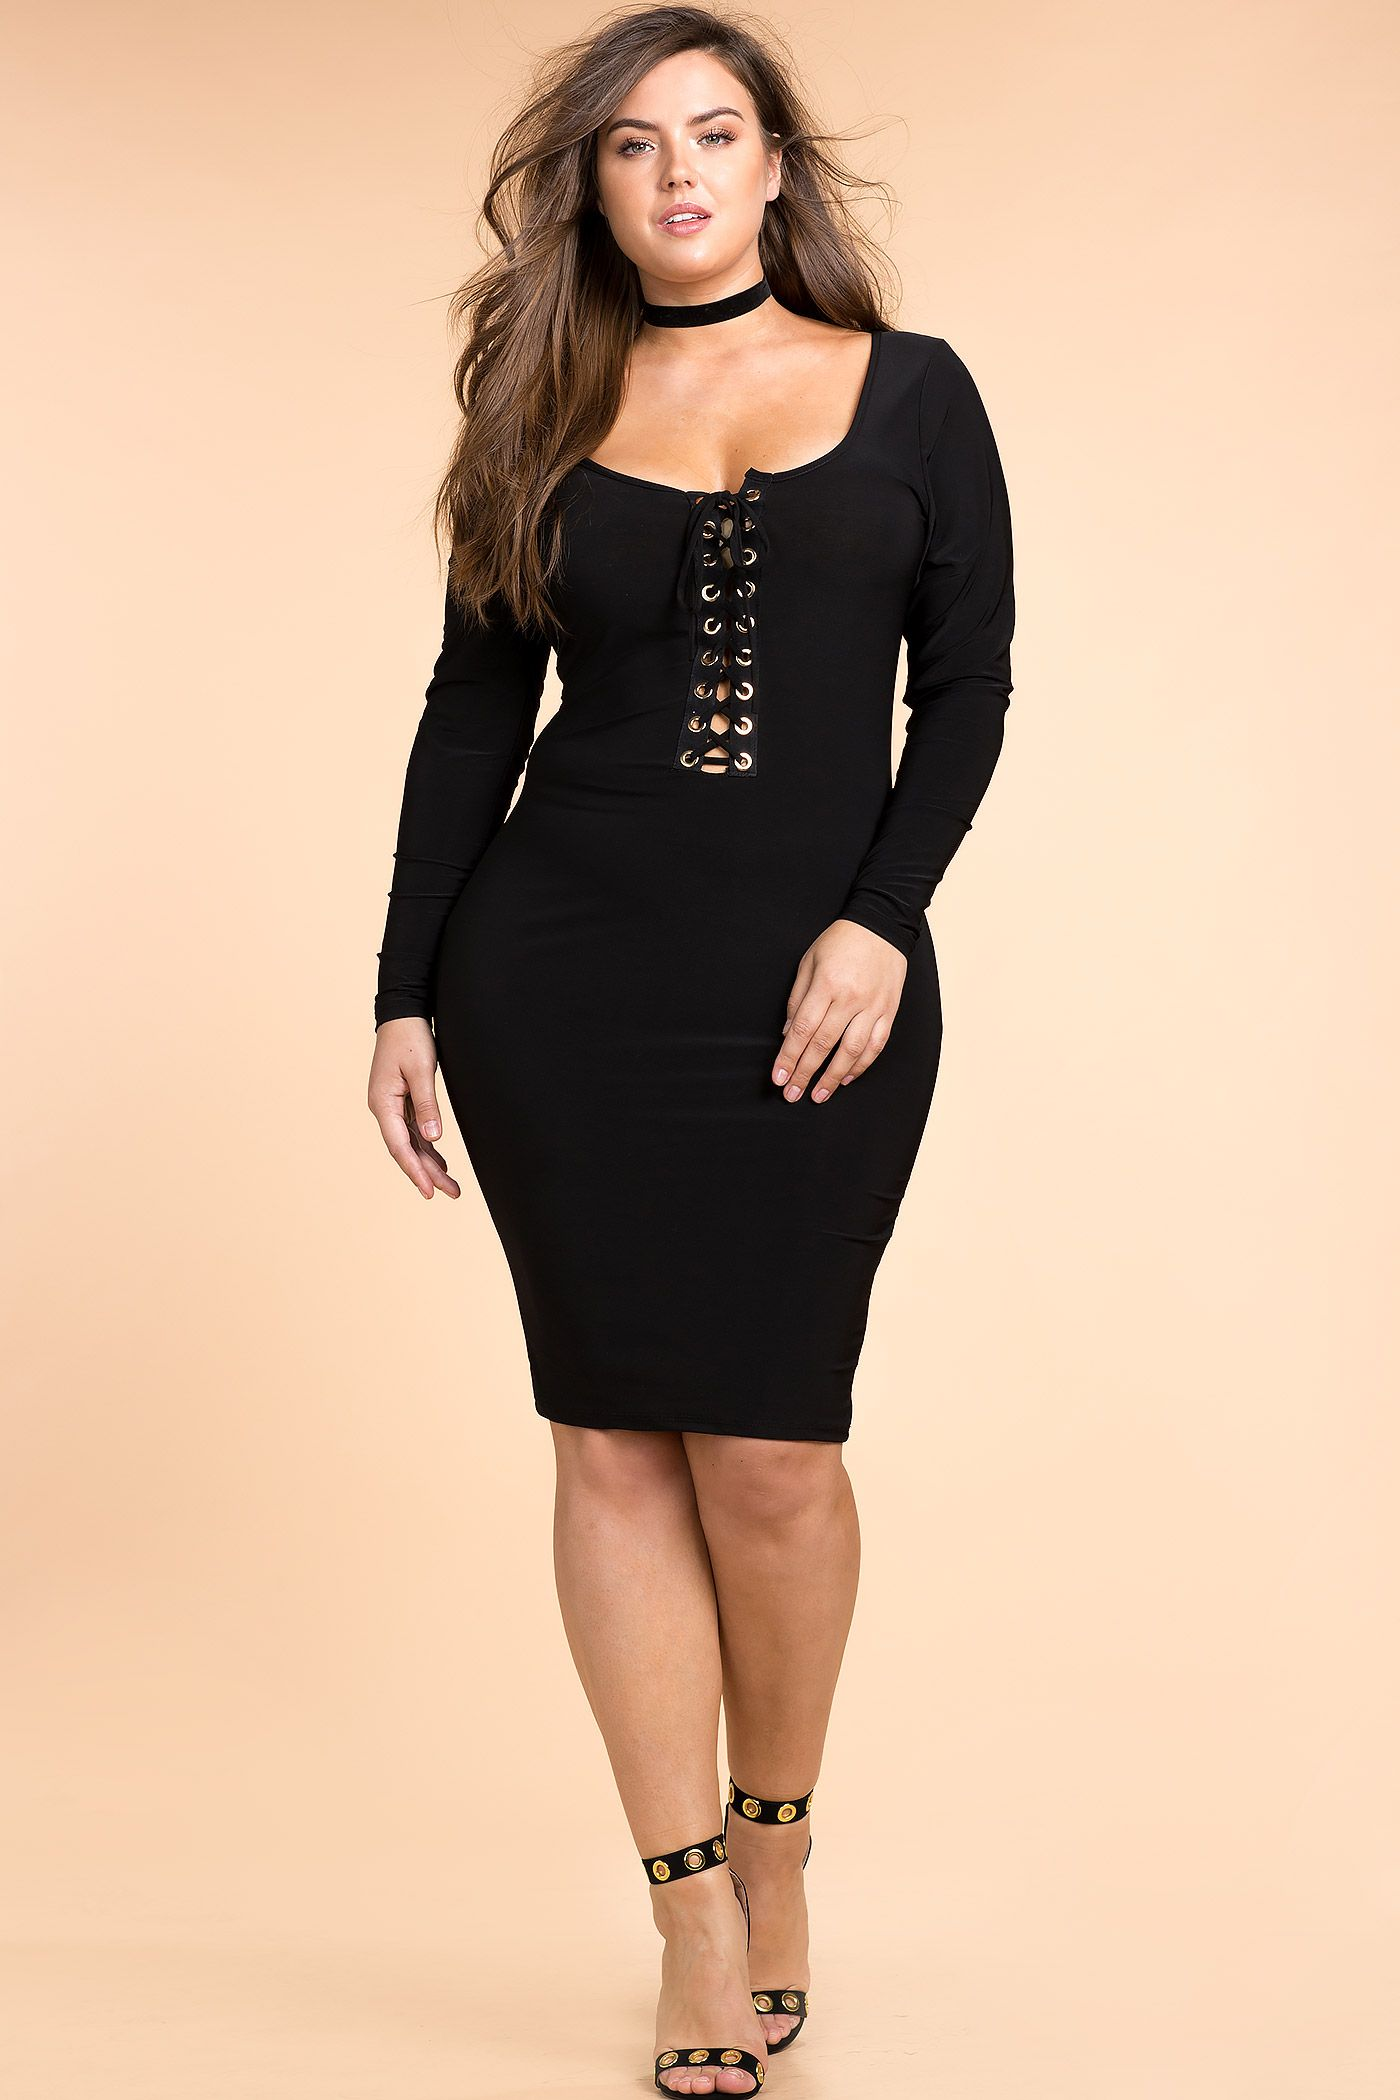 81f91583c6 Women's Plus Size Bodycon Dresses | Plunge Lace Up Bodycon Dress | A'GACI